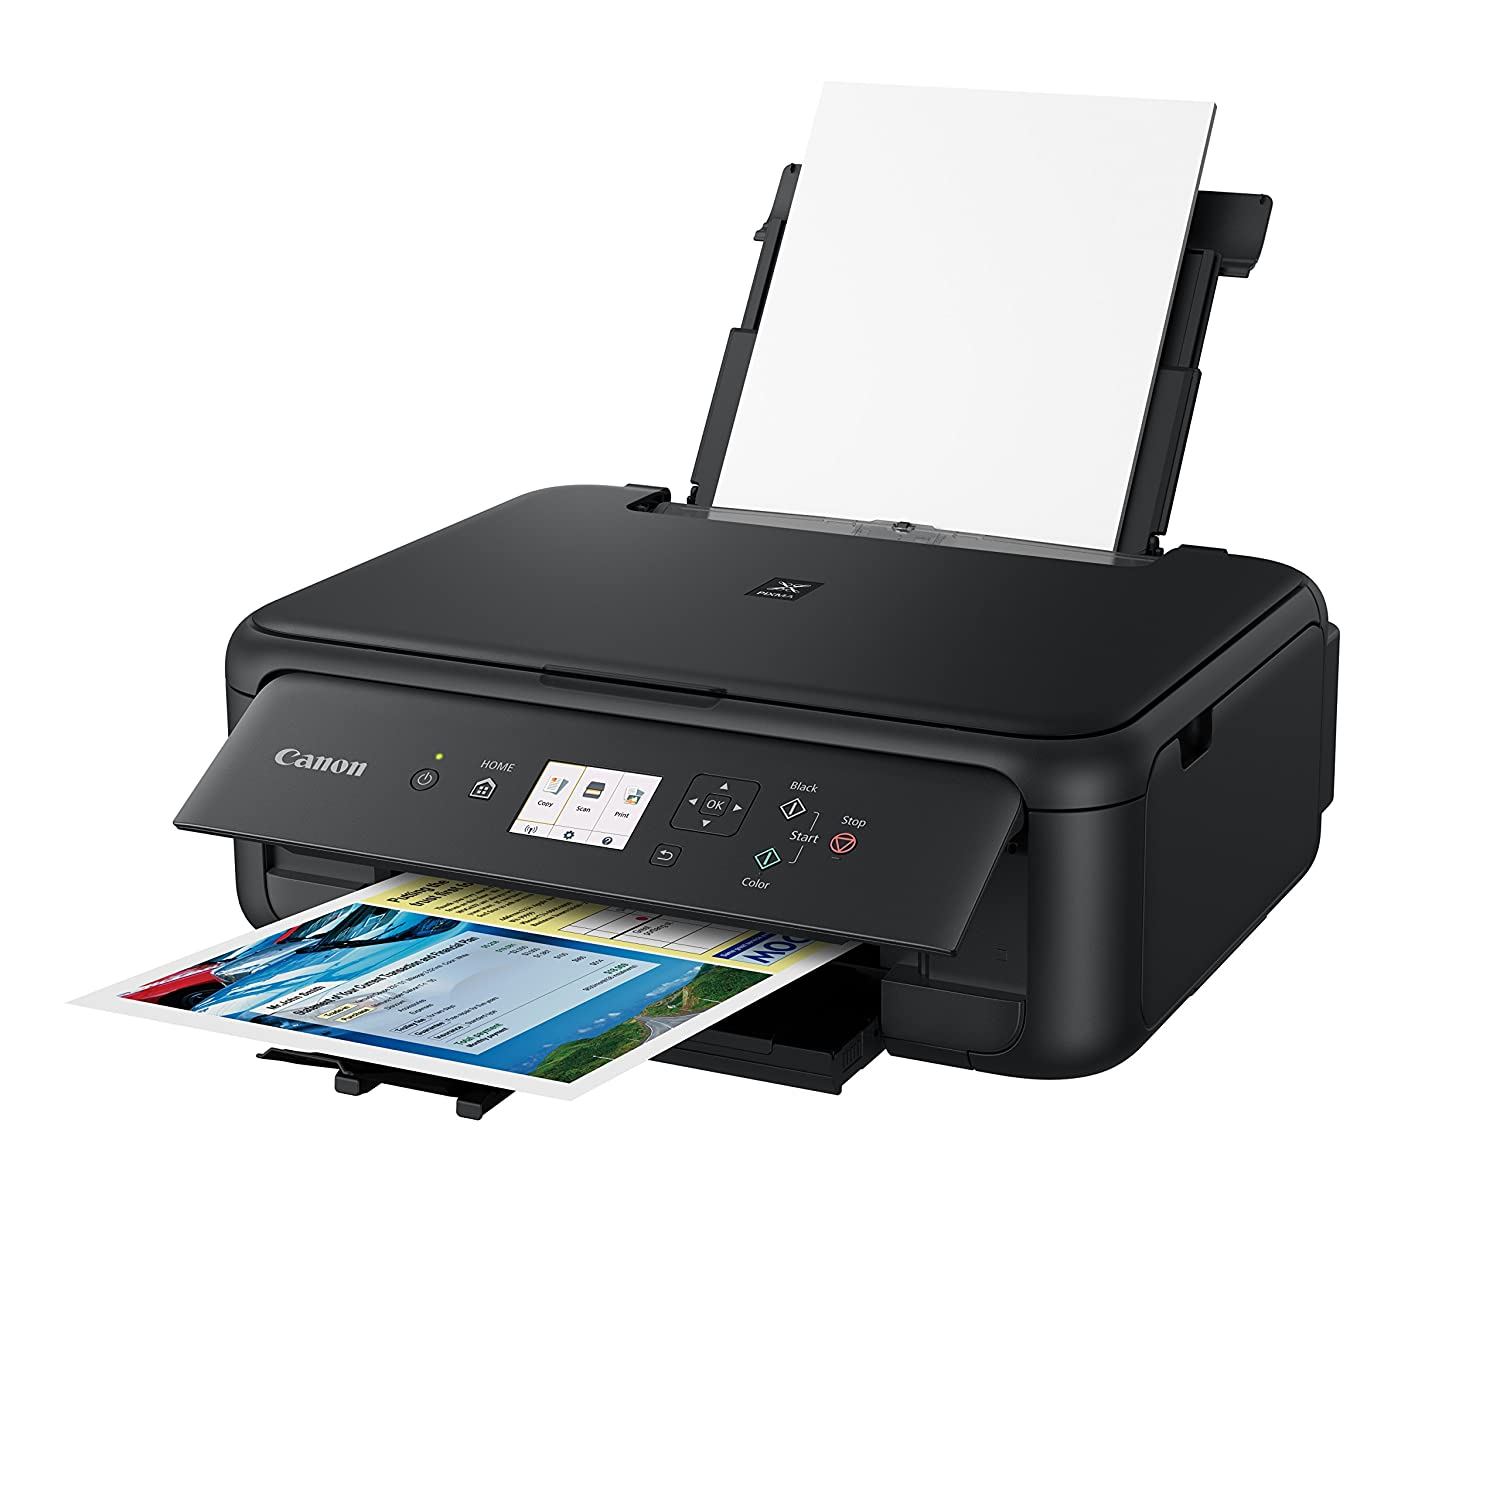 SAMSUNG ML-2150 PRINTER UNIFIED DRIVERS FOR WINDOWS DOWNLOAD